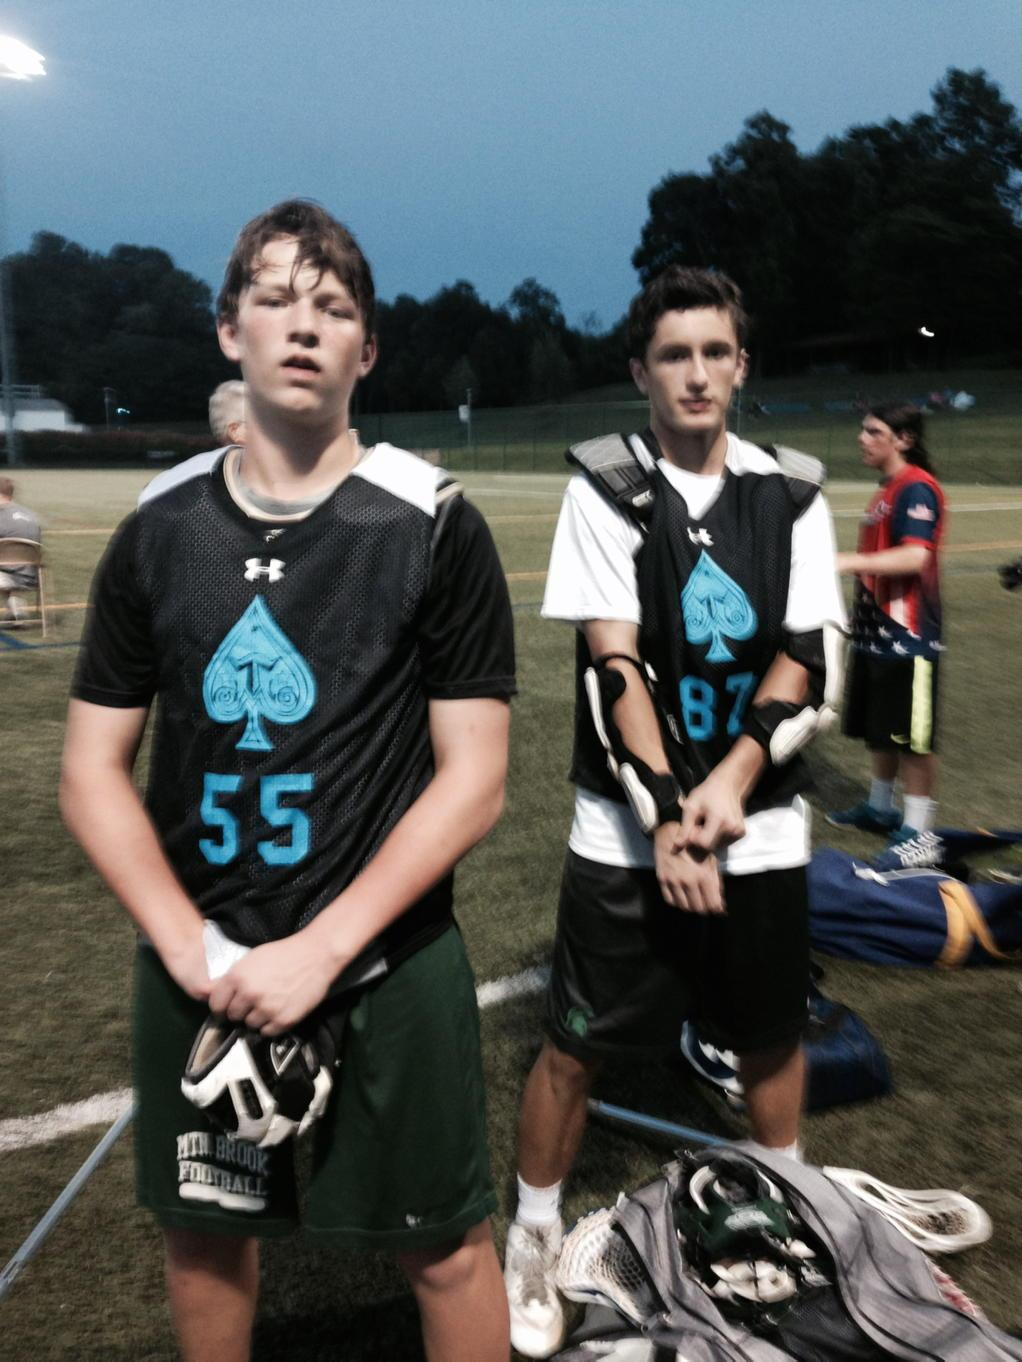 Our @trilogylacrosse Aces all stars! 2018s D Sean Doud and M Jackson Sharman @toplaxrecruits @PeaceLacrosse http://t.co/GGEgC9PI7f